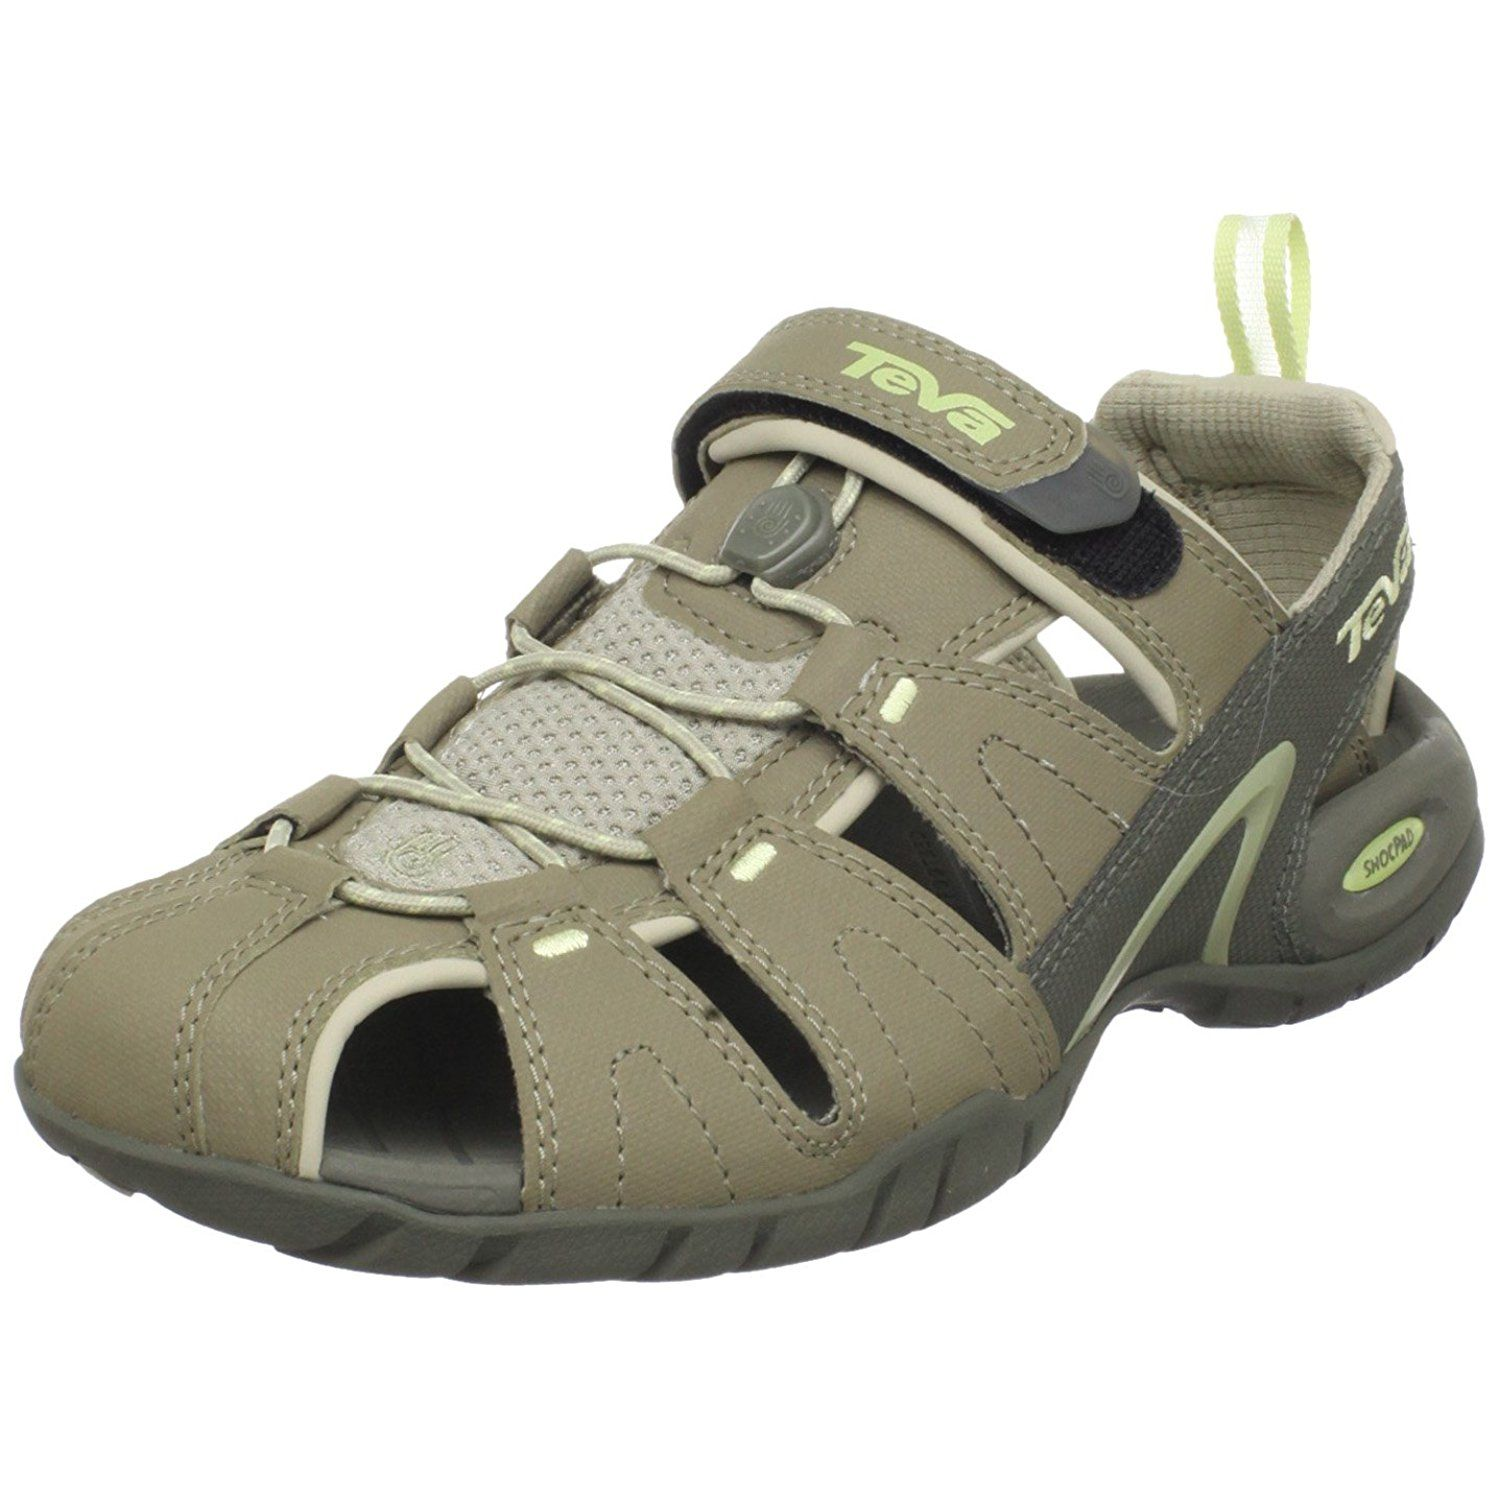 580323b07cc Teva Women s Dozer III Sandal    Find out more details by clicking the  image   Sandals